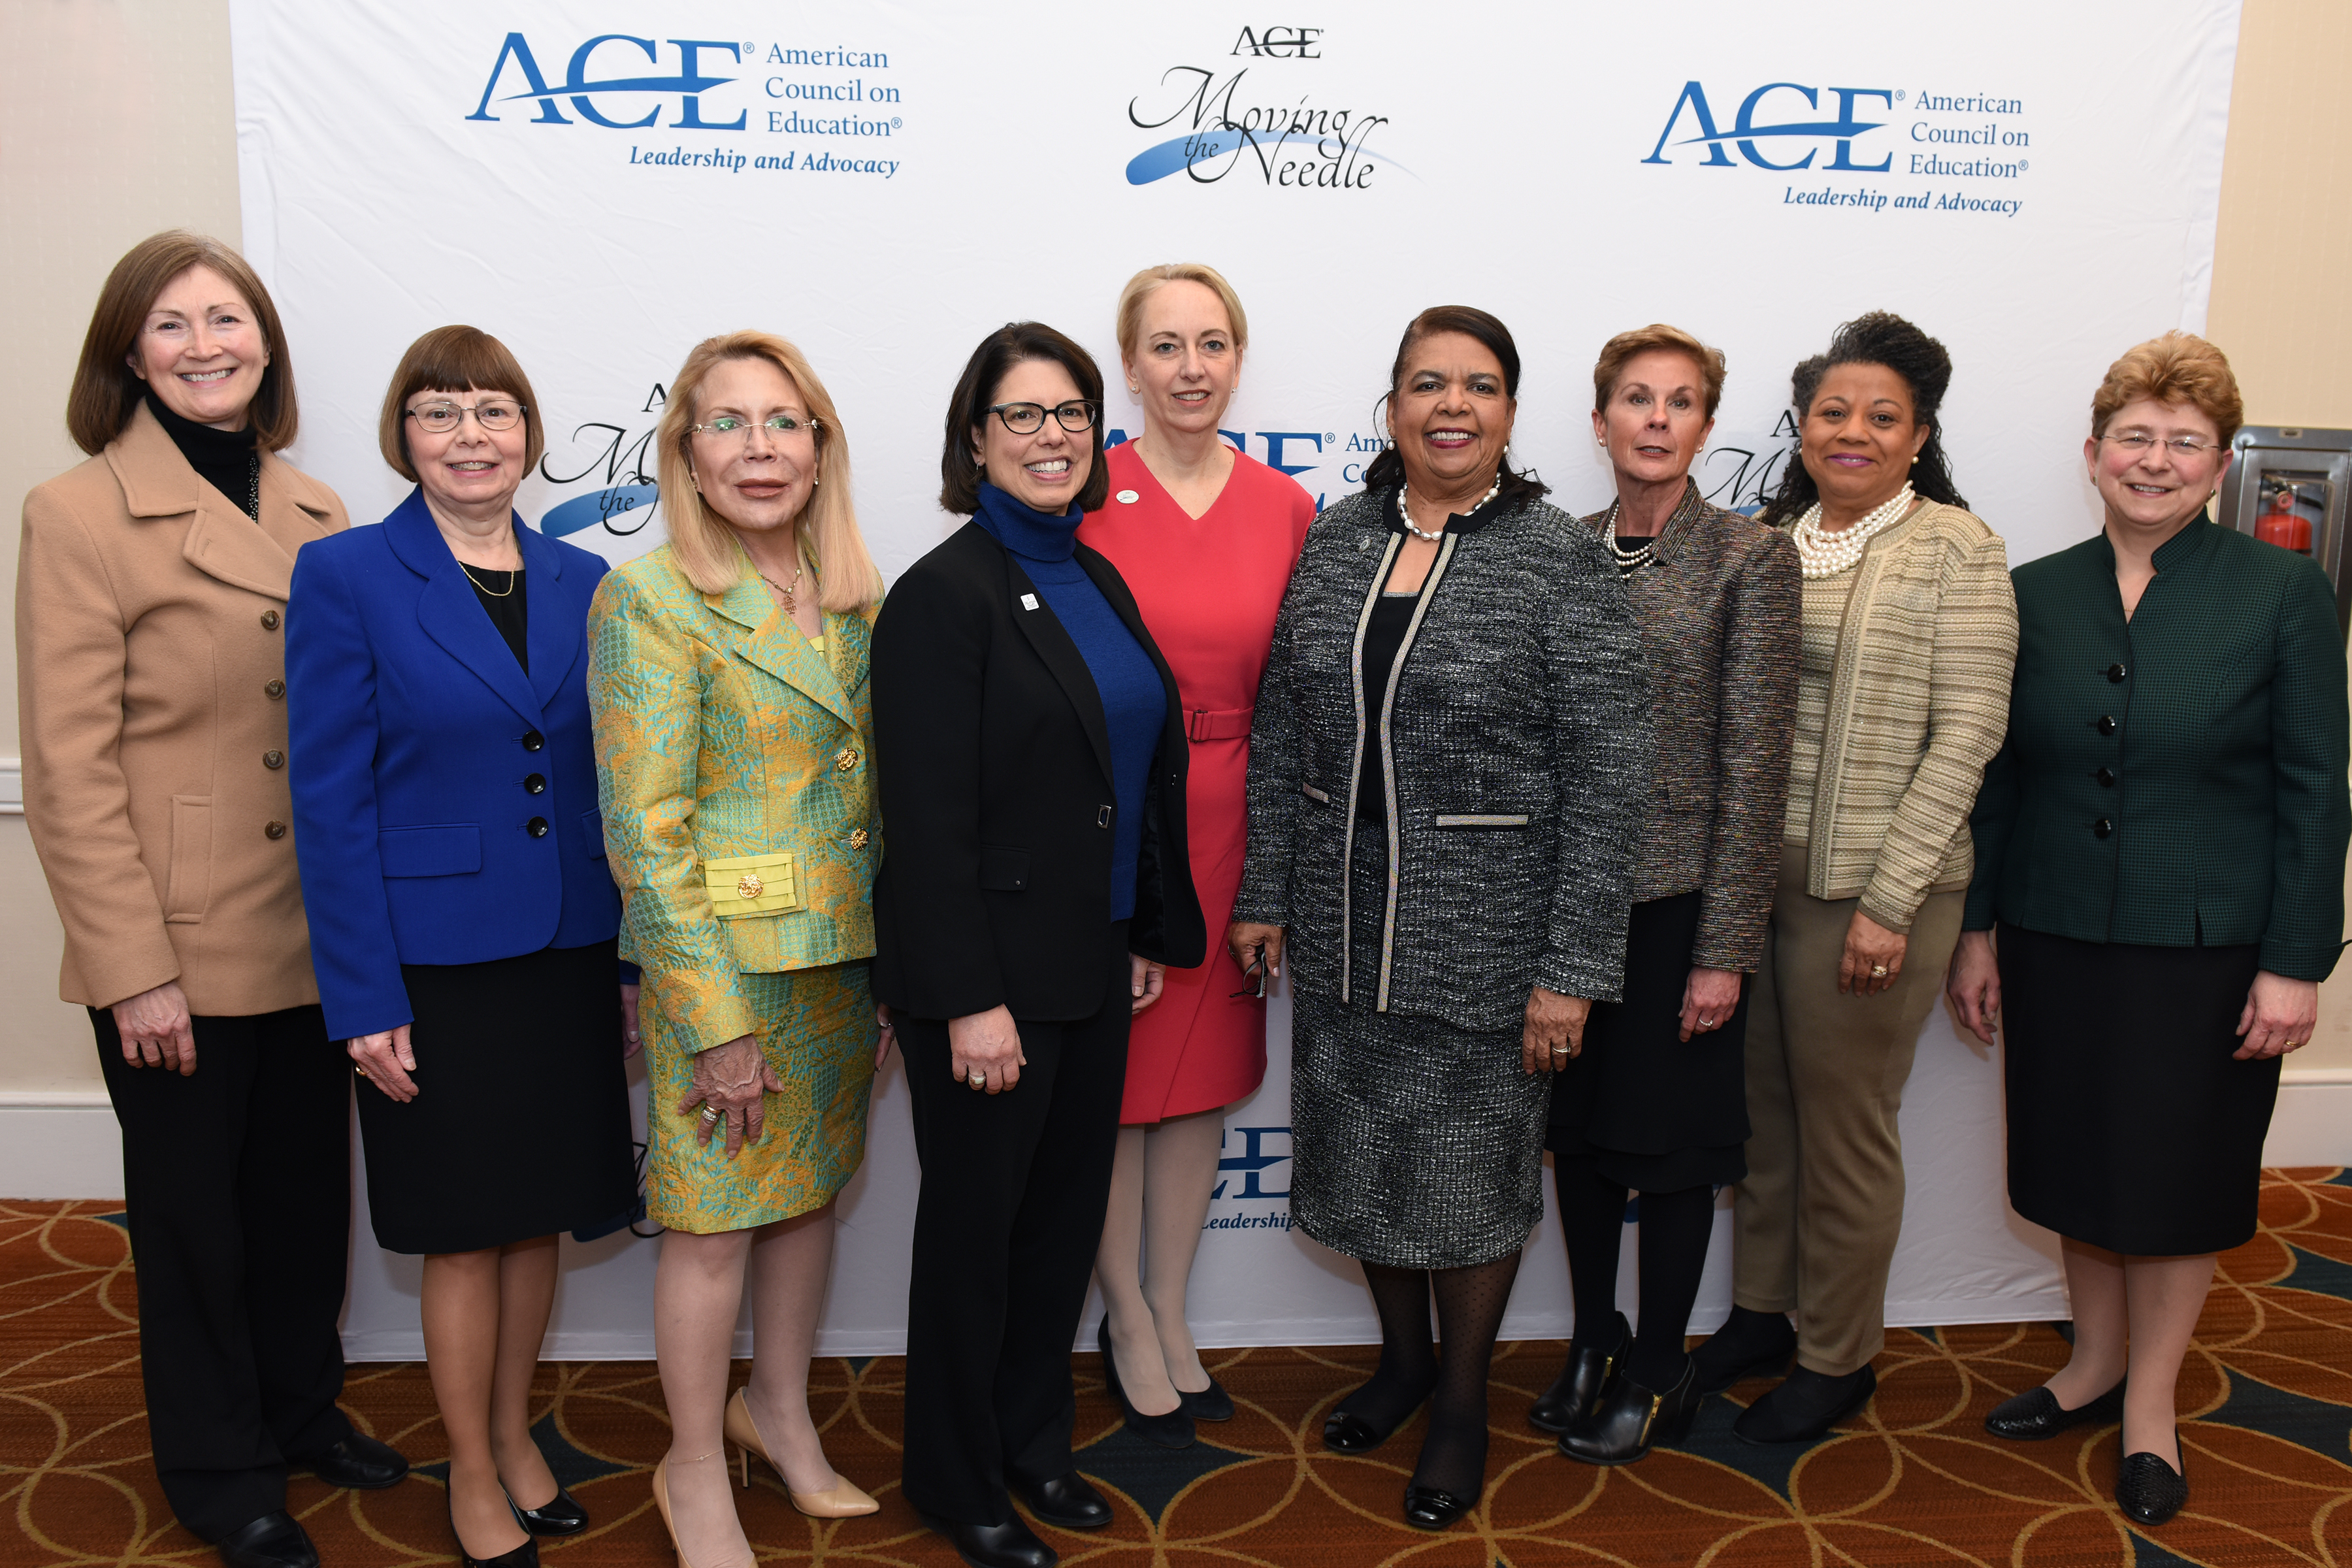 The Women's Network Executive Council in 2018